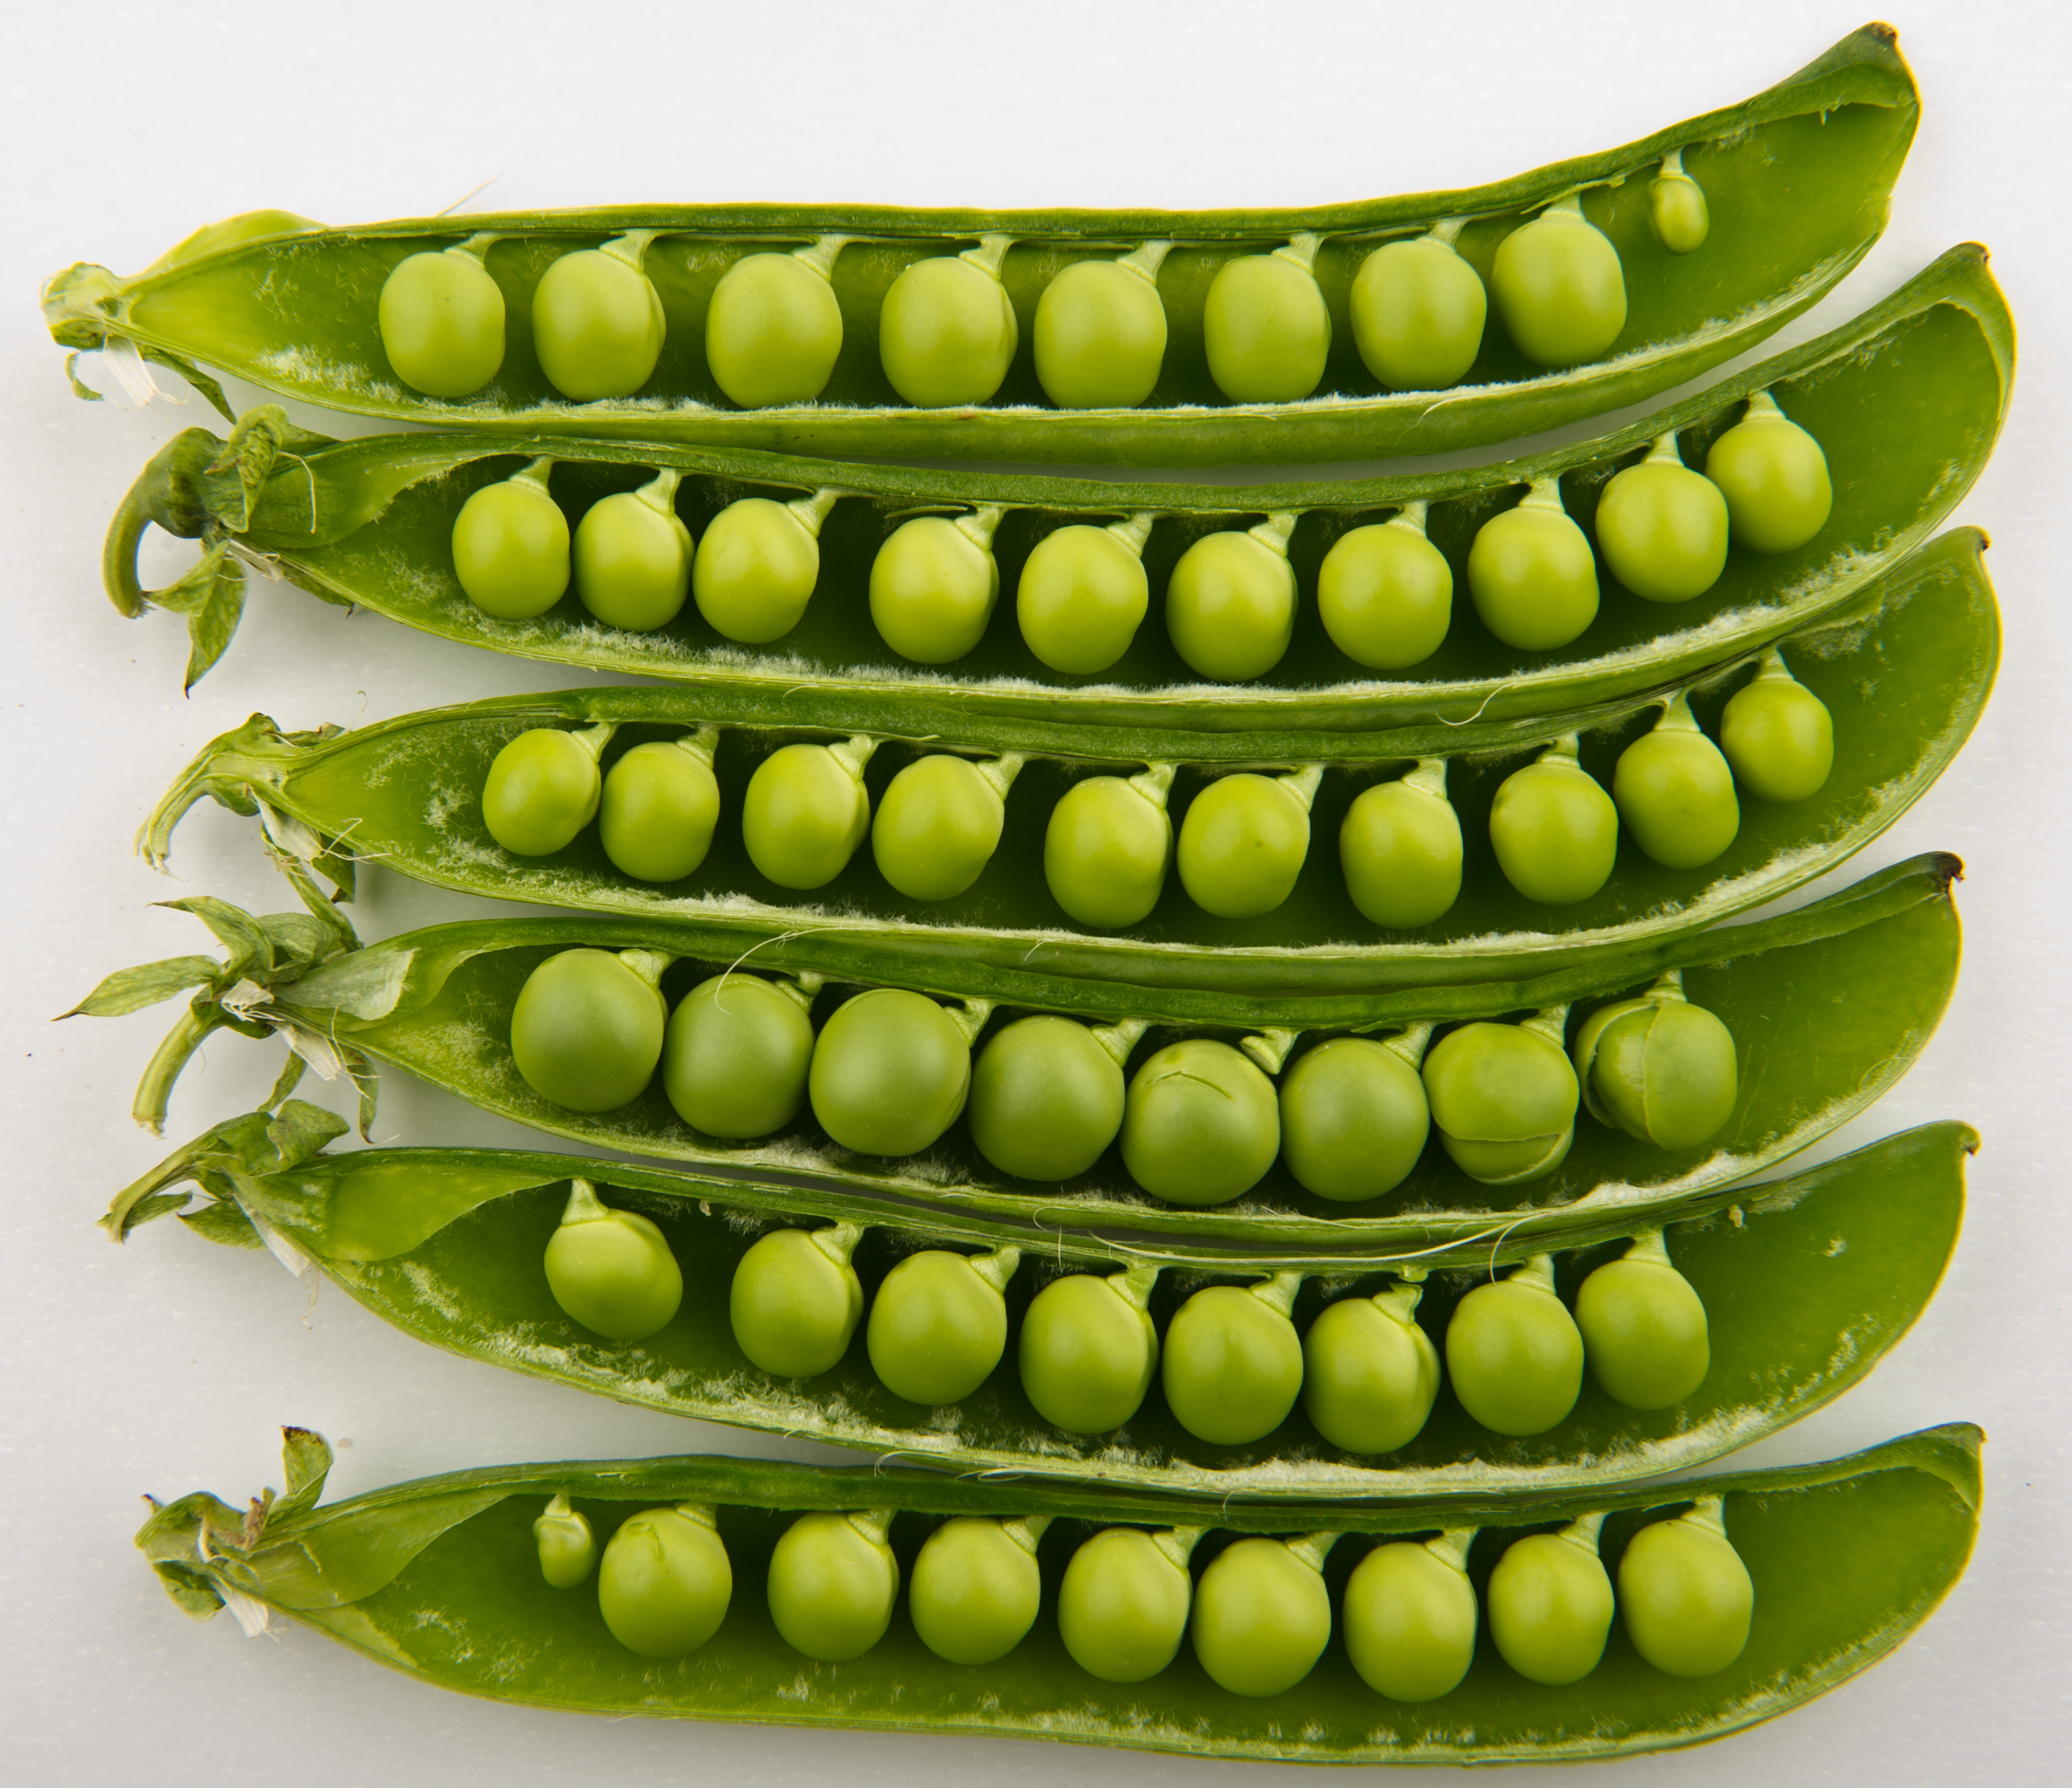 Image of Peas